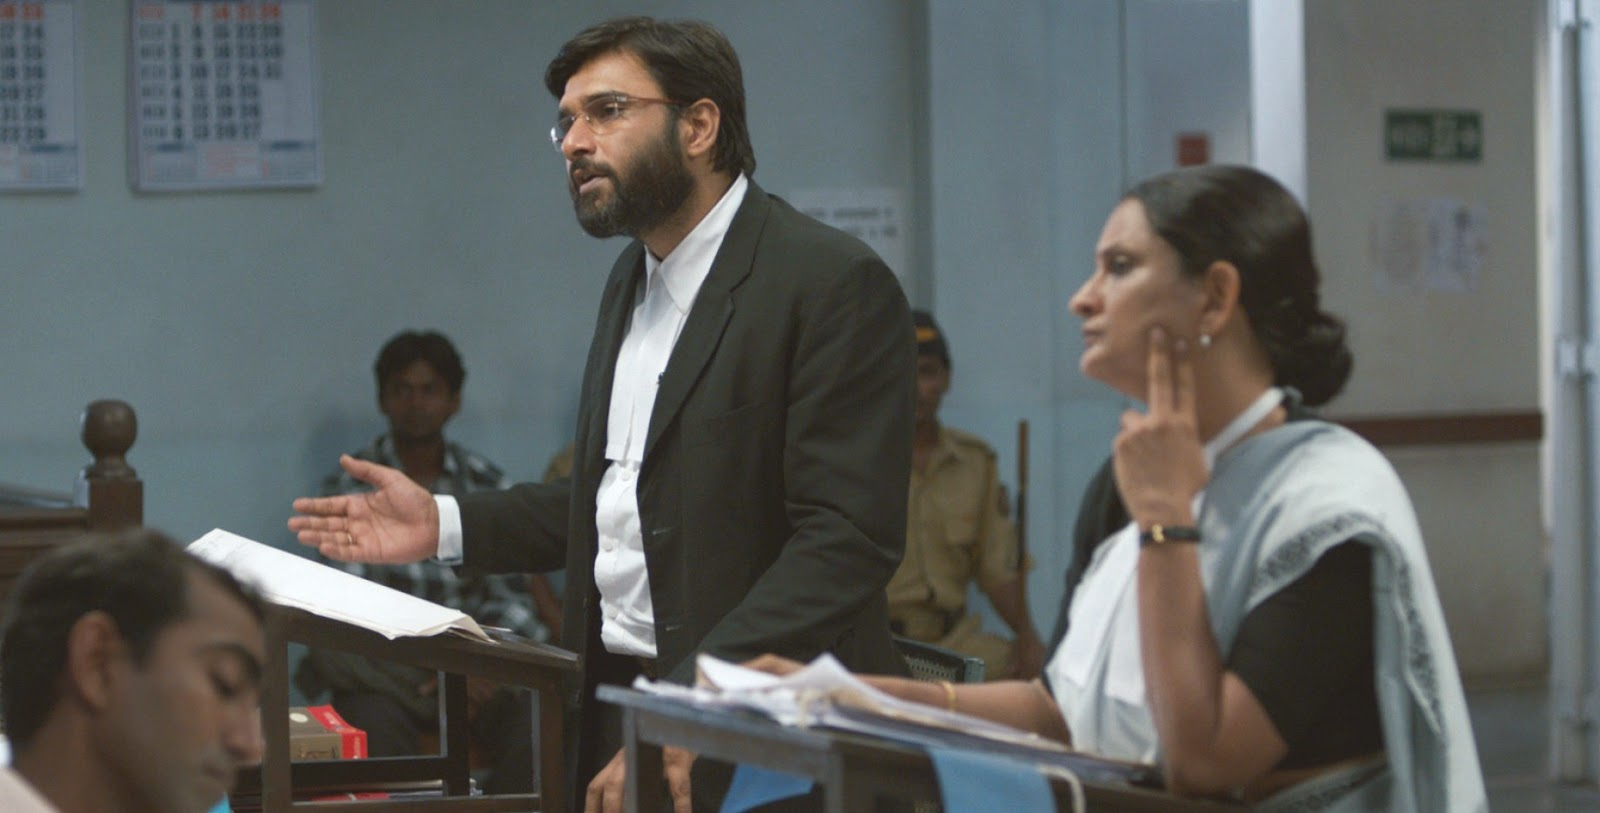 Vinay and Nutan Argue over Kamble's case, in Court (2014), Directed by Chaitanya Tamhane